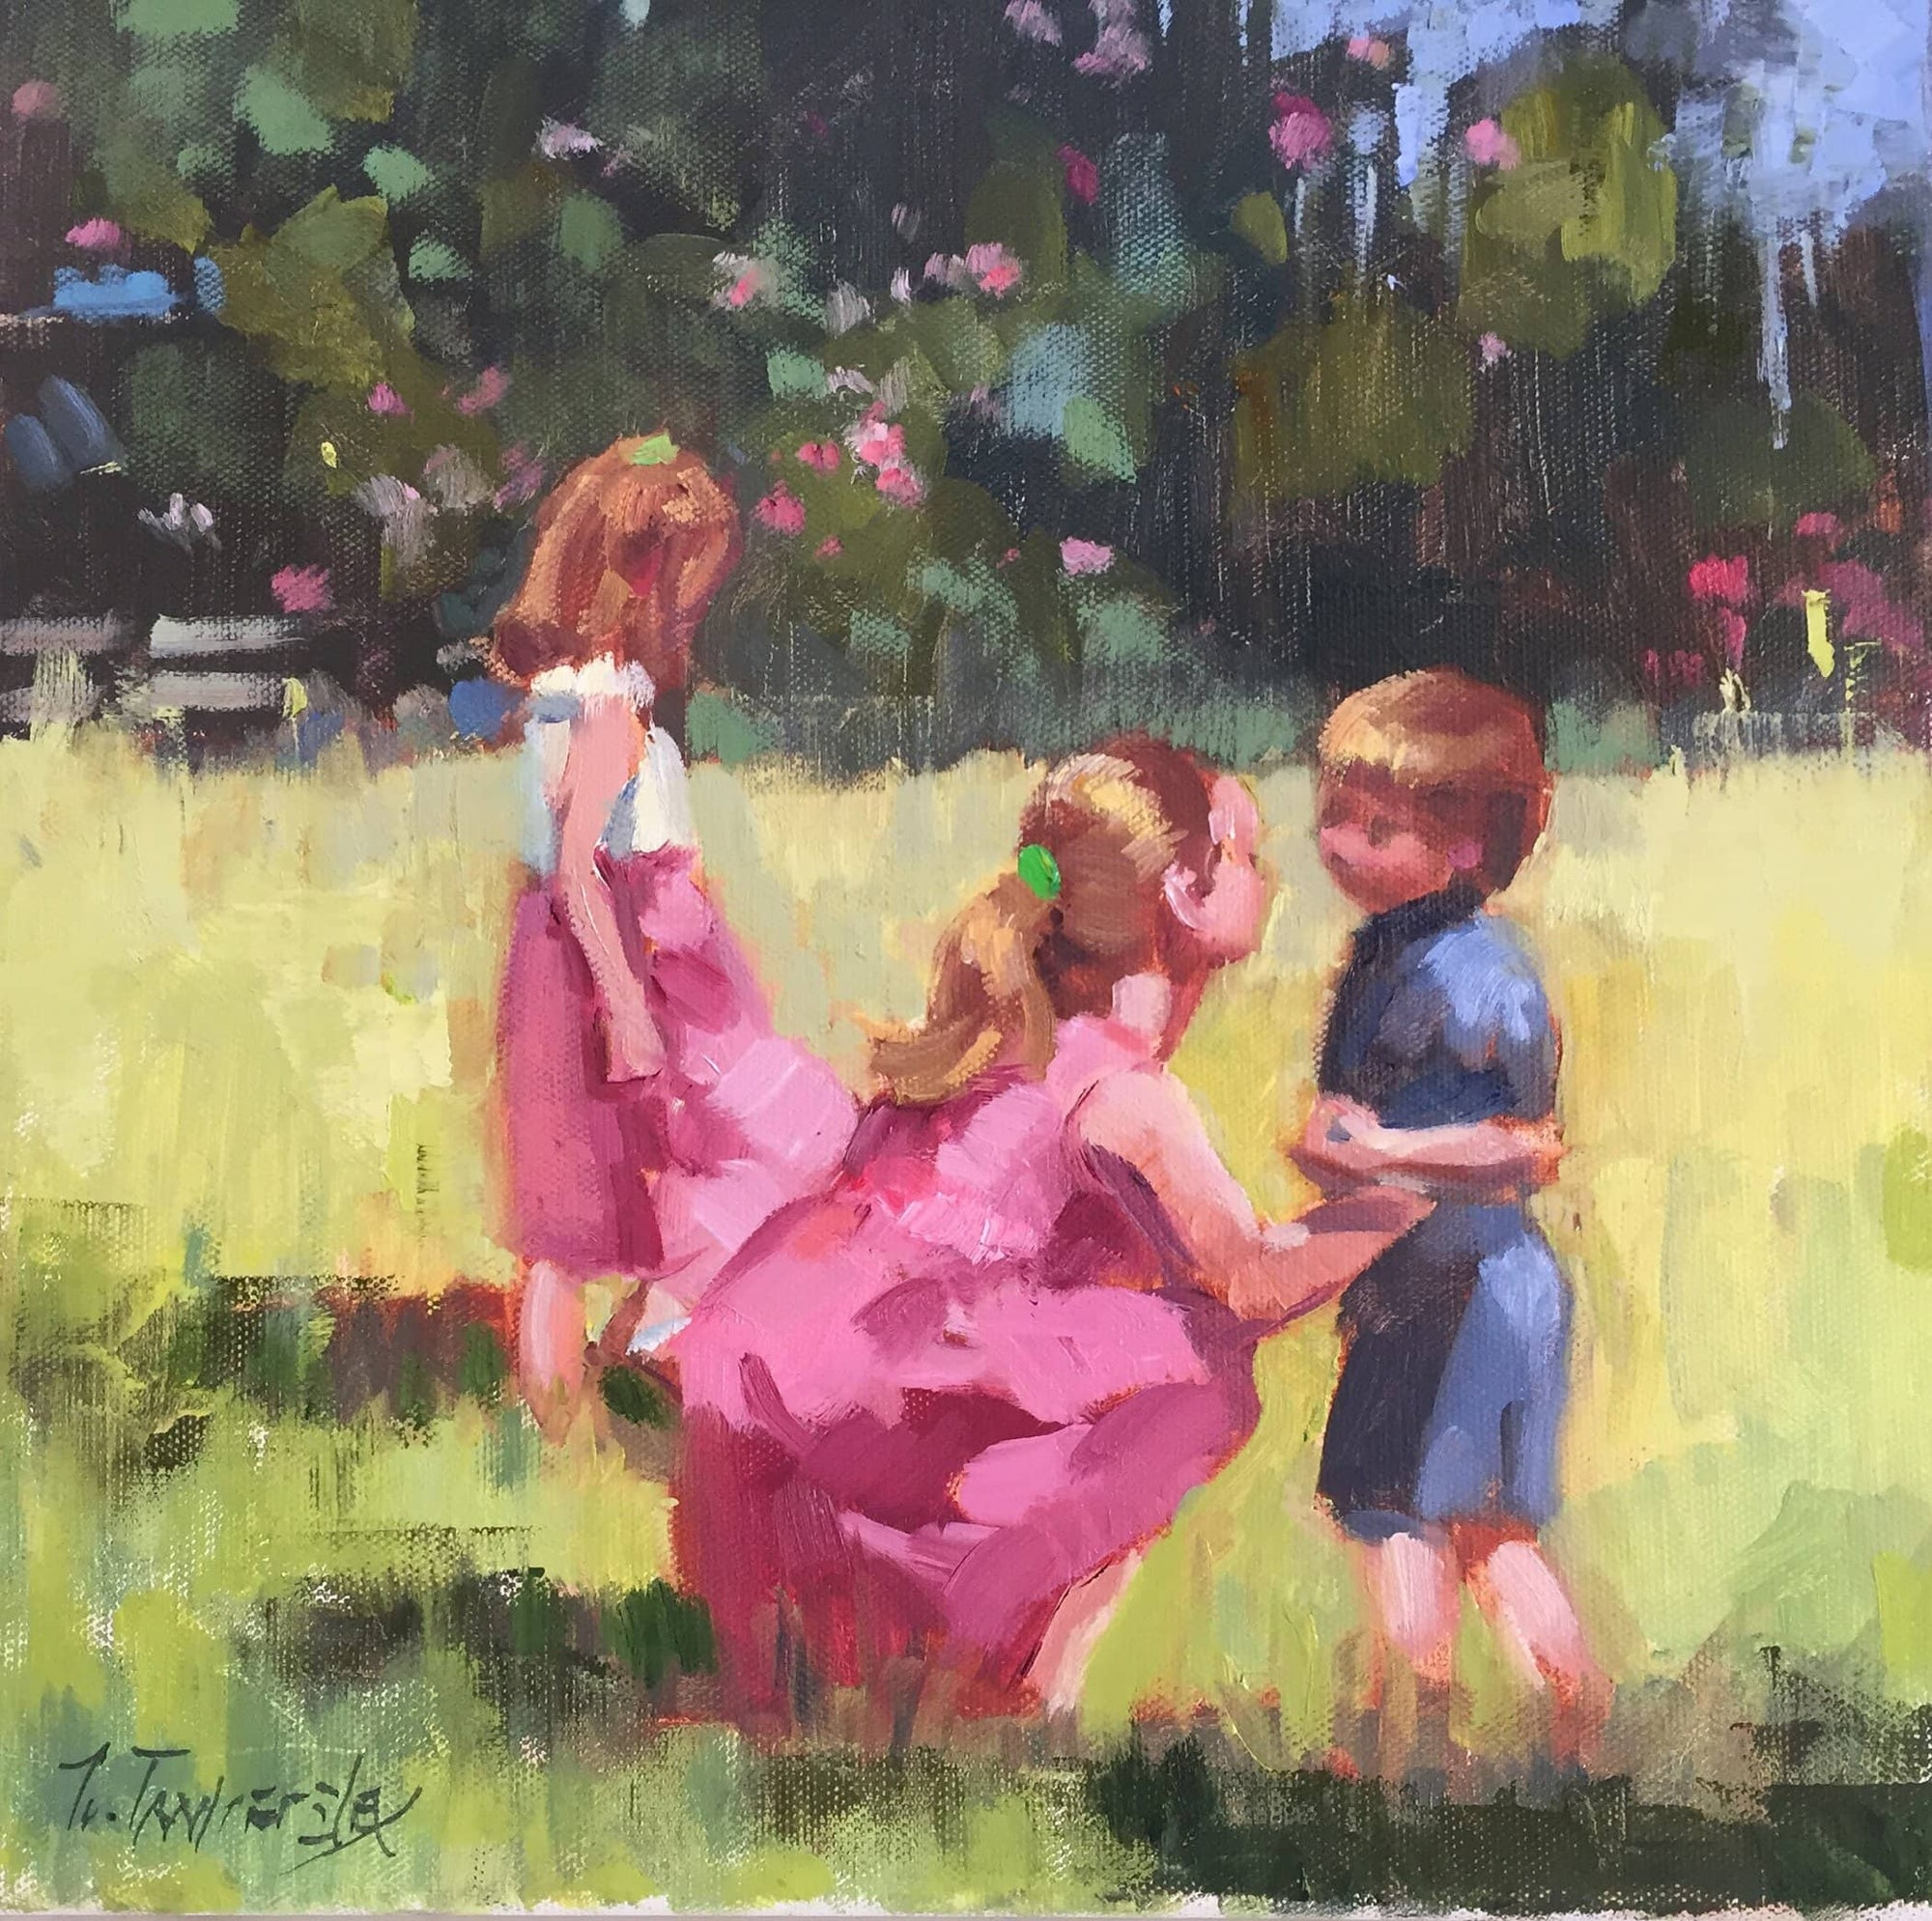 Nancy Tankersley Painting Figures From Photographs